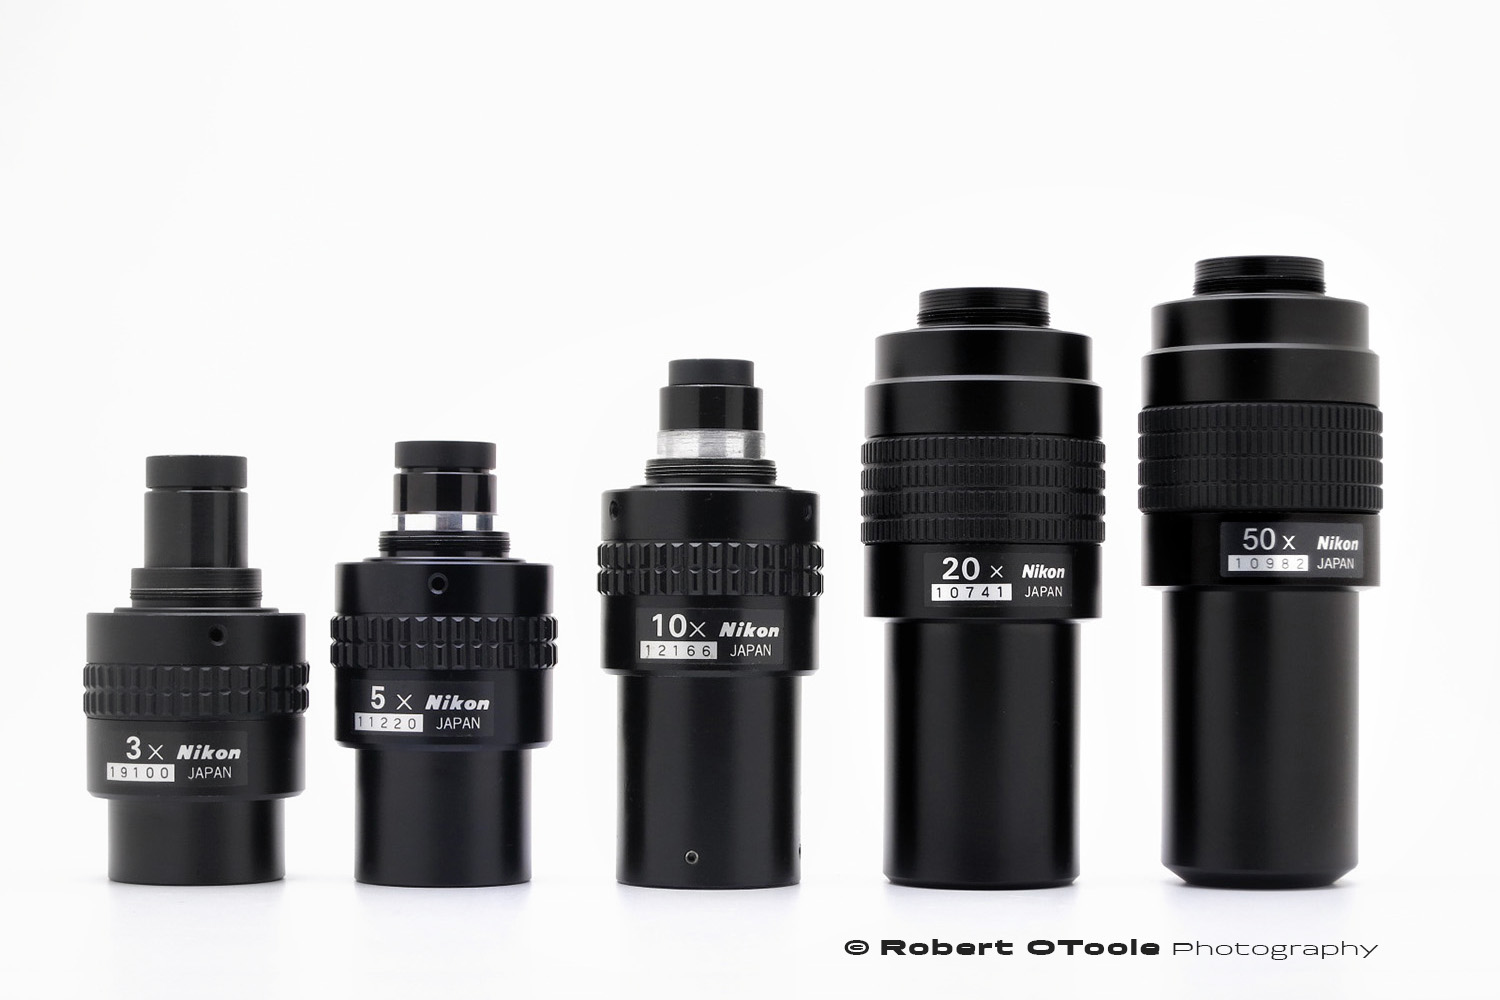 The Nikon MM objective lineup.